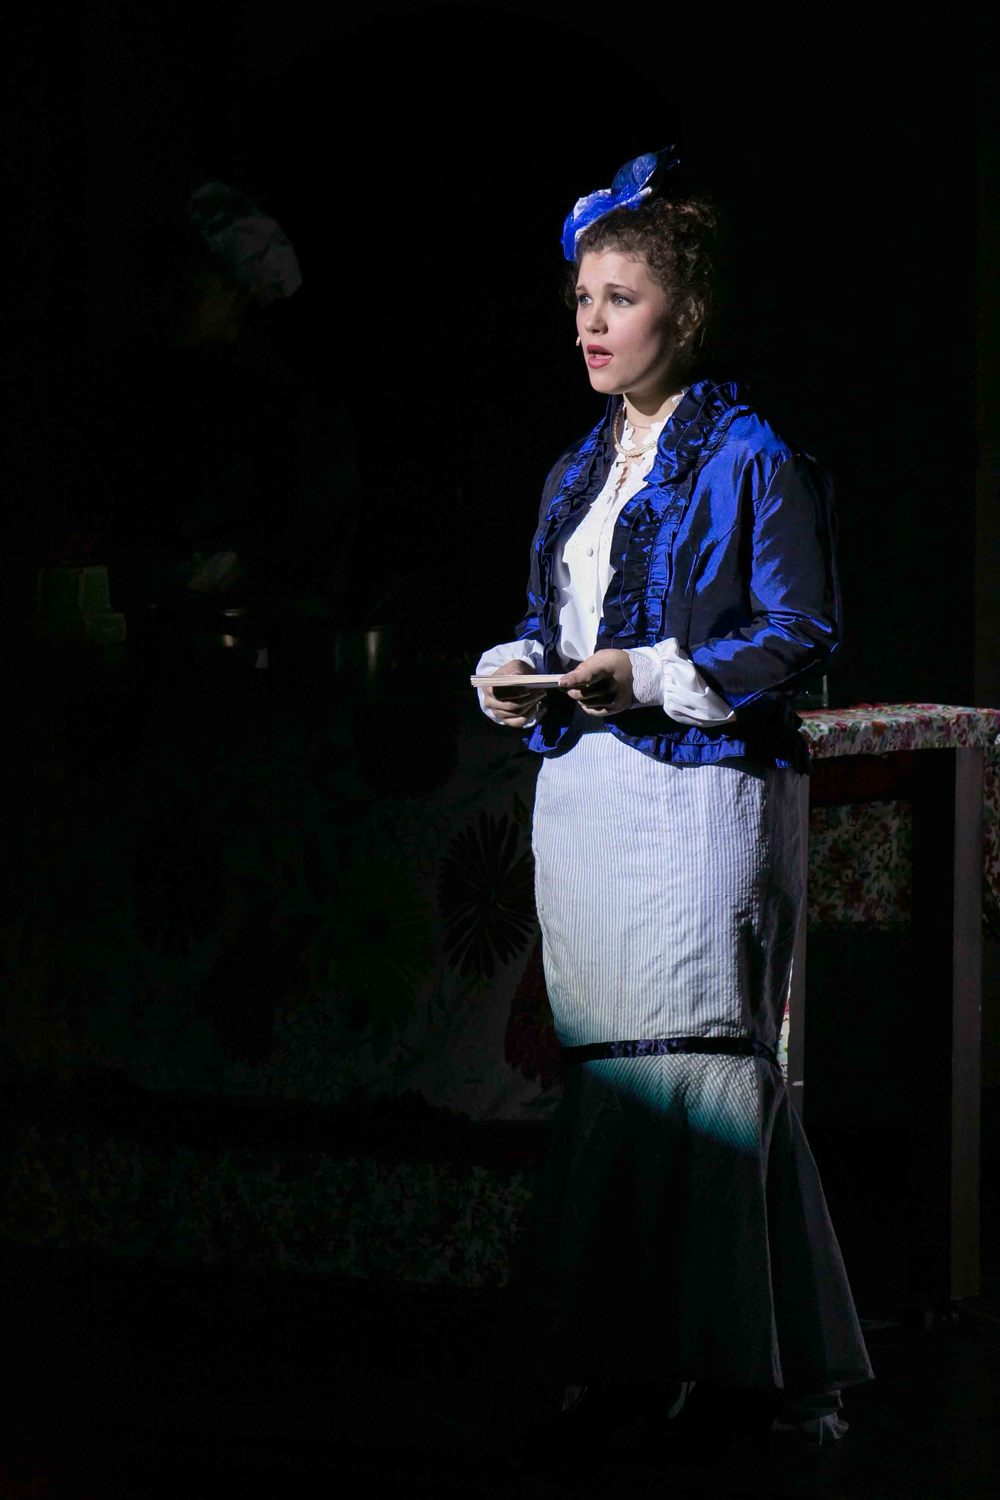 2-4-16 Mary Poppins Proper Cast 0199.jpg